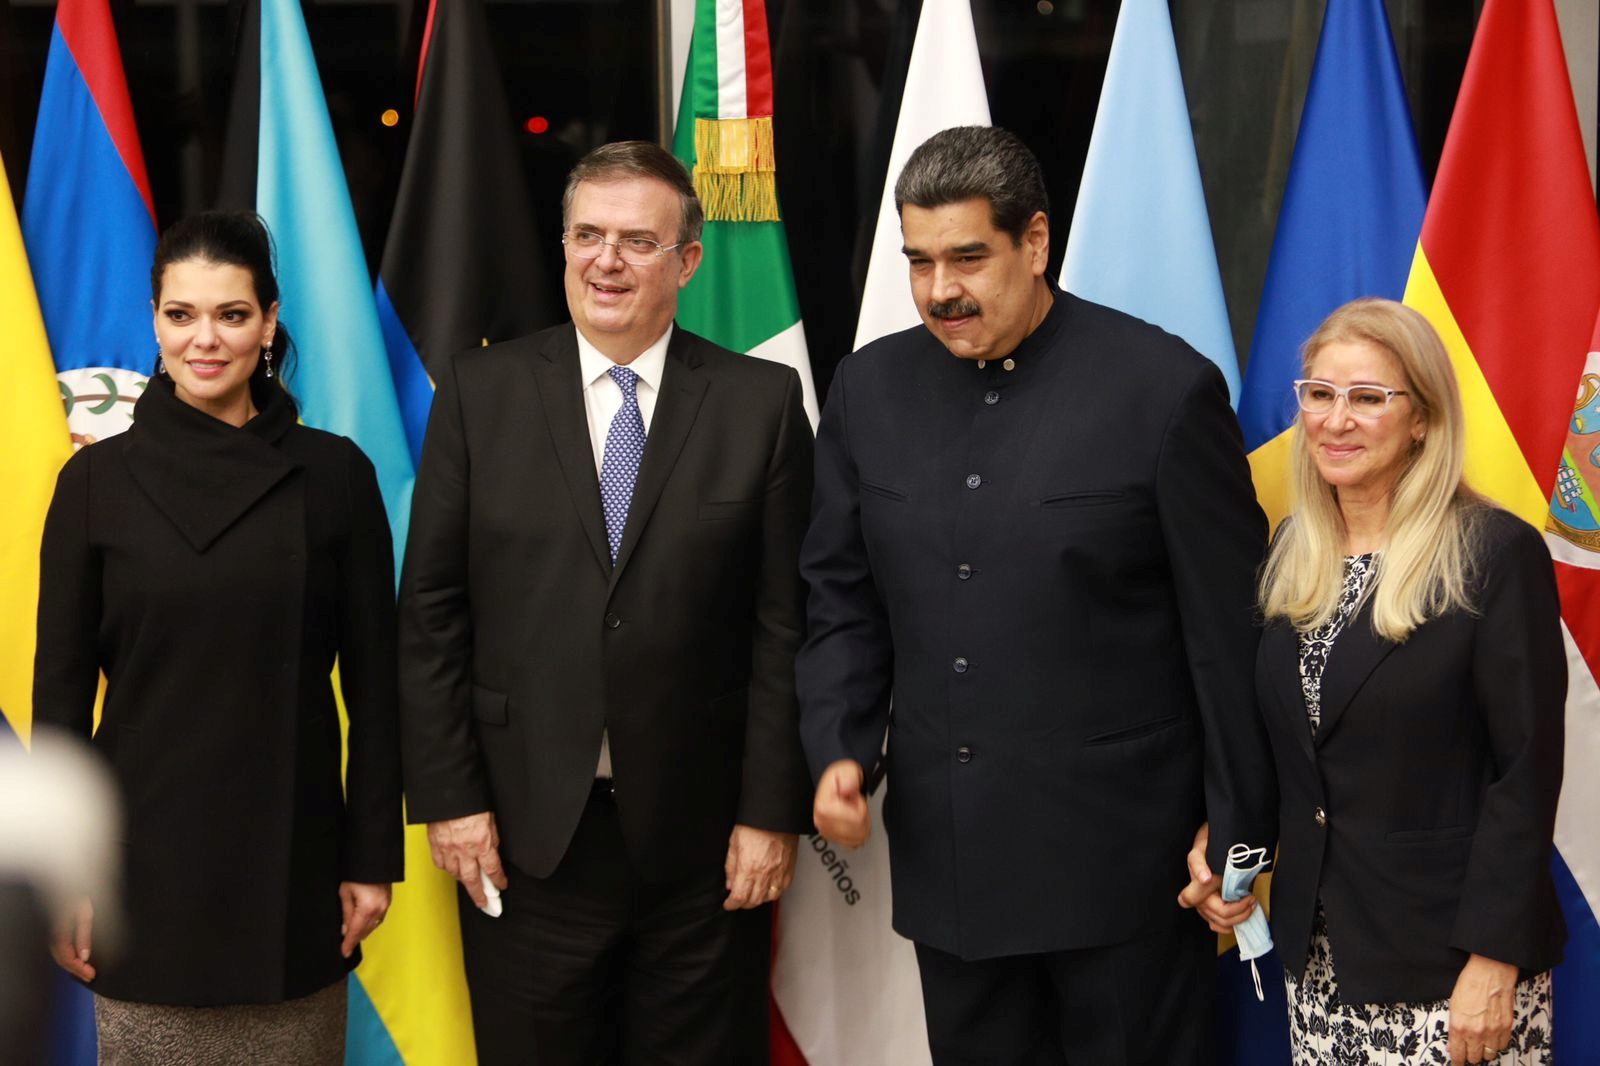 Mexico's Foreign Relations Minister Marcelo Ebrard poses for a photo with Venezuelan President Nicolas Maduro, flanked by National Assembly member and first lady Cilia Flores and his wife Rosalinda Bueso, at the Benito Juarez International airport ahead of the summit of the Community of Latin American and Caribbean States (CELAC), in Mexico City, Mexico September 17, 2021. Mexico's Foreign Relations Ministry/Handout via REUTERS